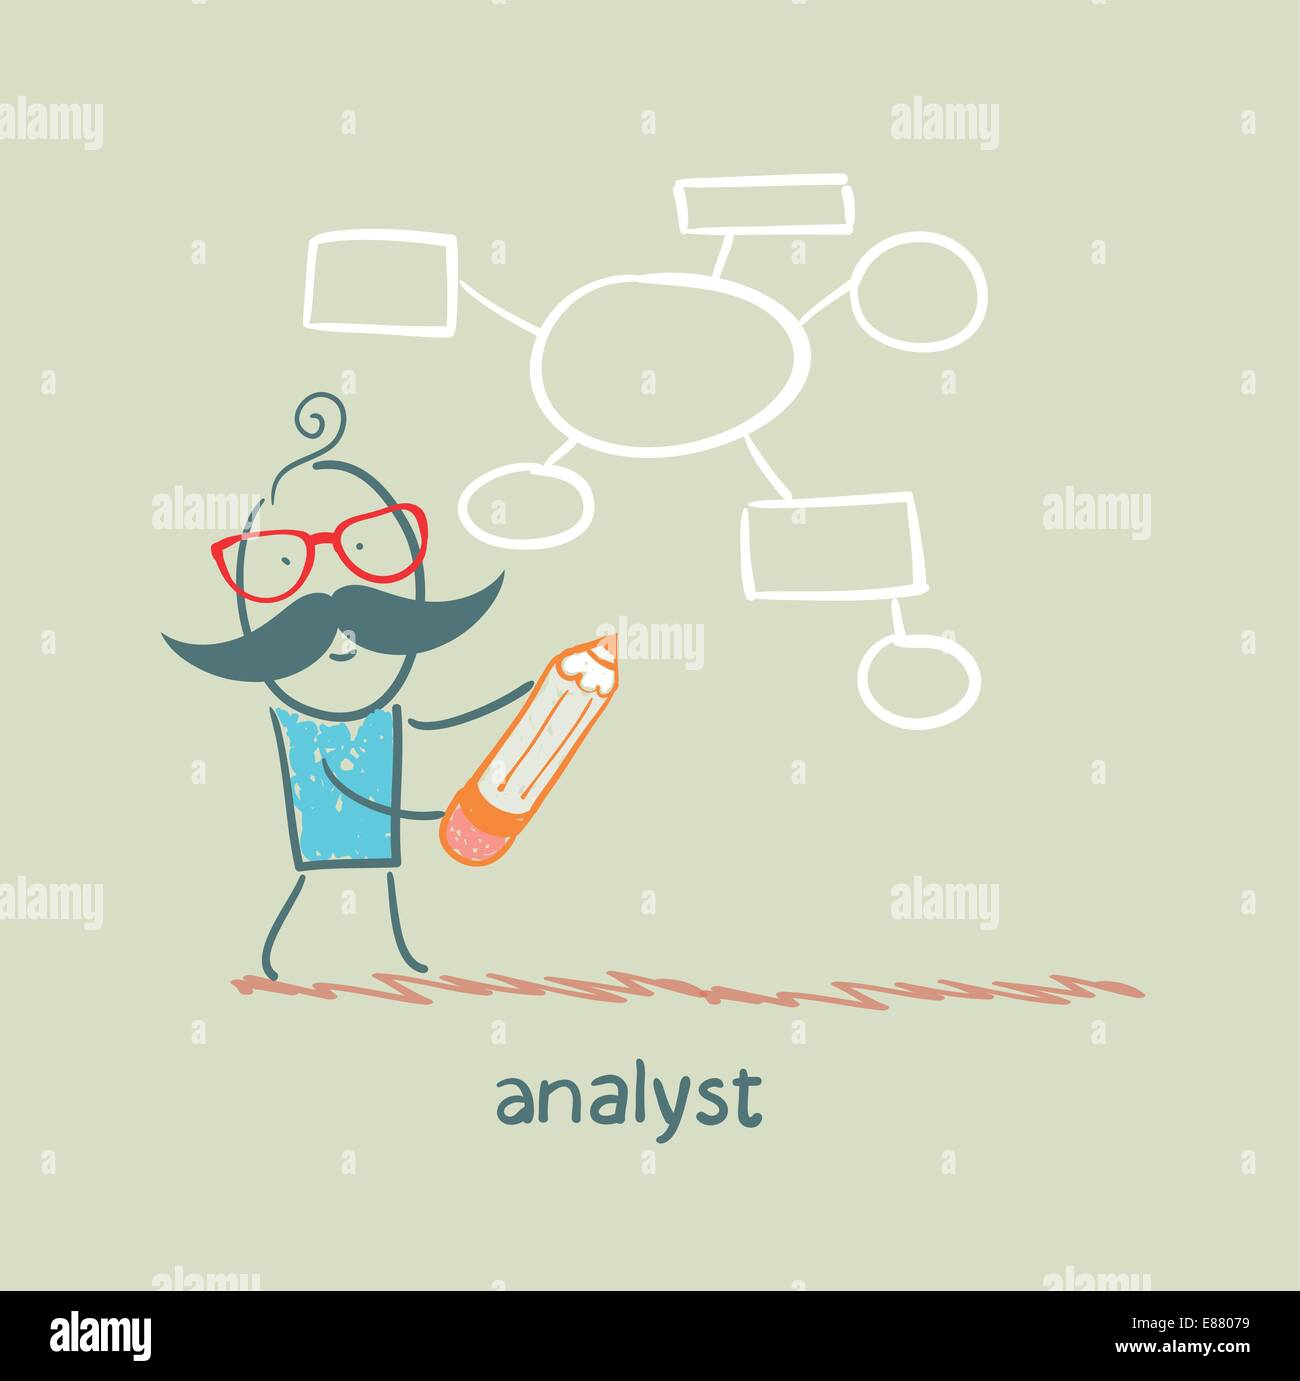 hight resolution of analyst draws a diagram with a pencil